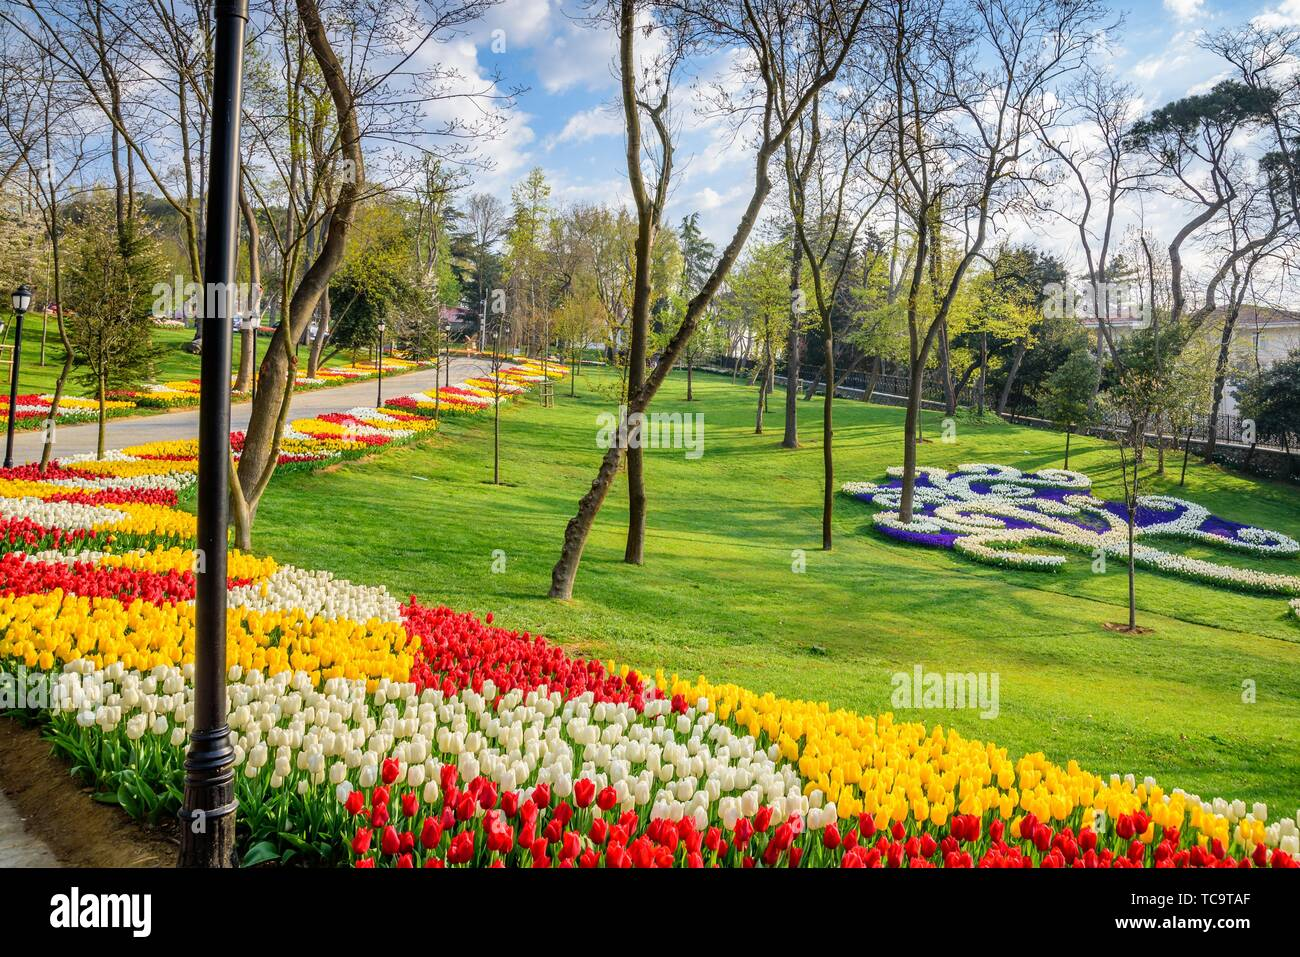 Traditional Tulip Festival in Emirgan Park, a historical urban park located in Sariyer district. Tourists and locals visit and spend time. - Stock Image